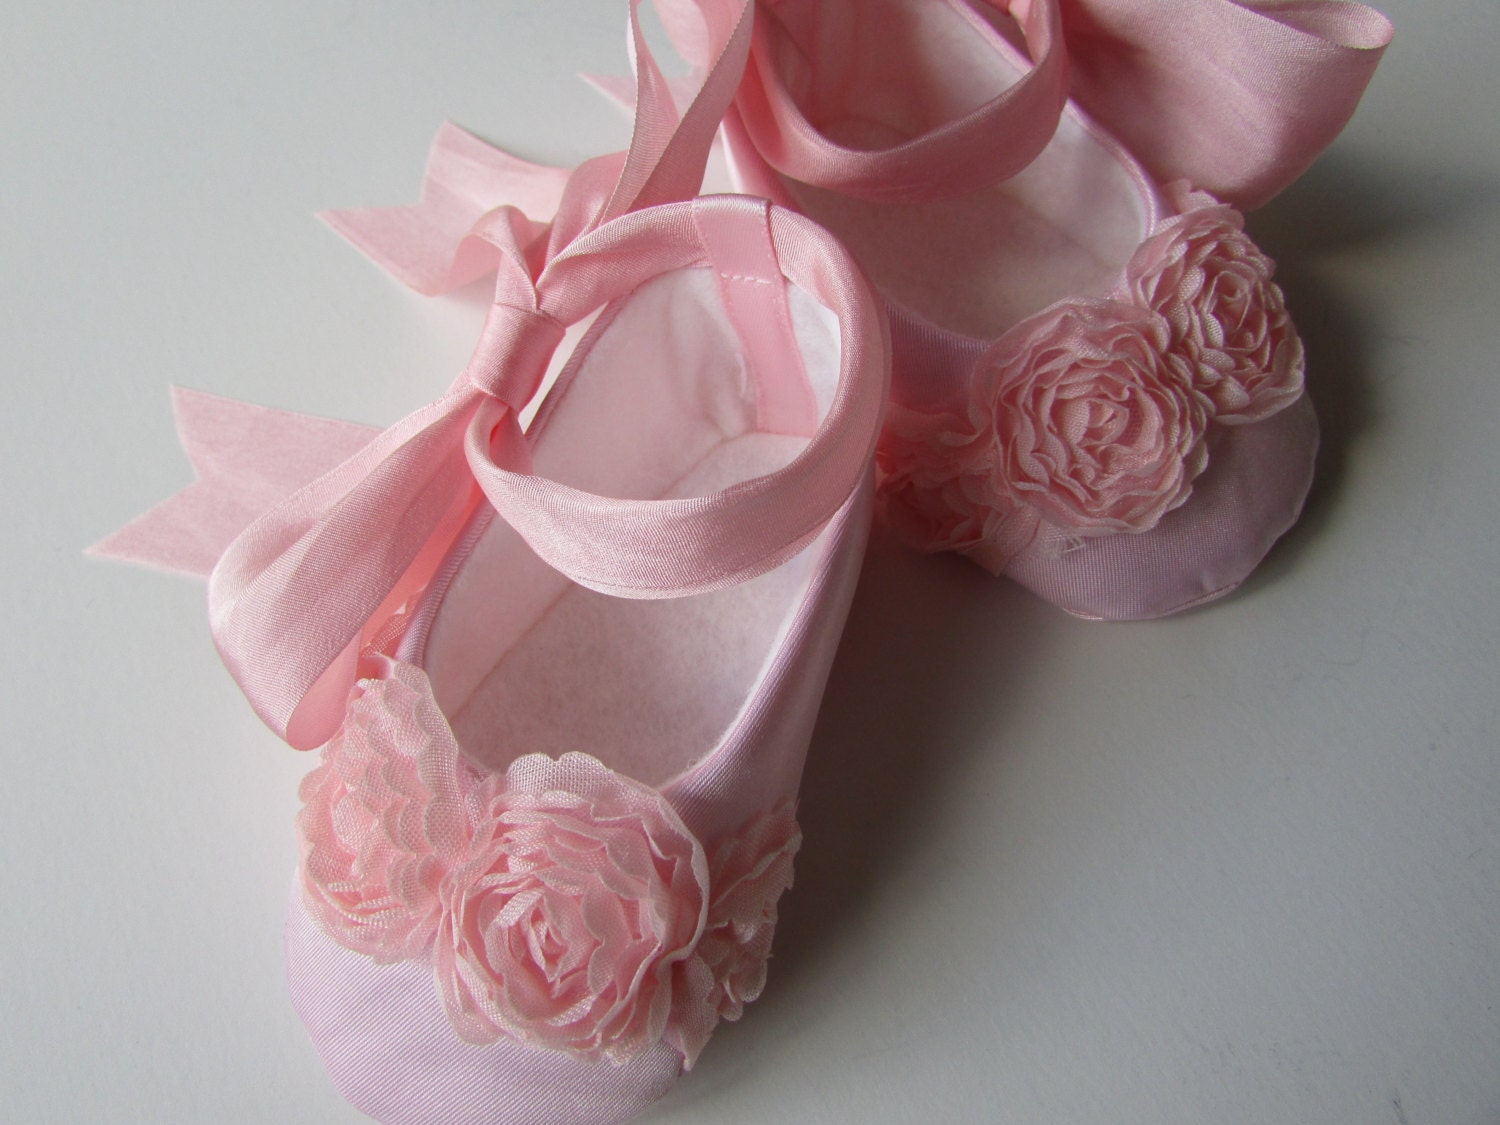 Girls' Ballet Dance Shoes. Clothing. Shoes. Kids & Baby Shoes. All Girls Shoes. Product - Sansha Pink Ballet Full Leather Sole Ballet Shoes Little Girls 5M-7M. Product Image. Price $ 99 - $ Girls Pink Leather Outsole Satin Bow Glitter Ballet Shoes 2 Baby Kids. Product Image.